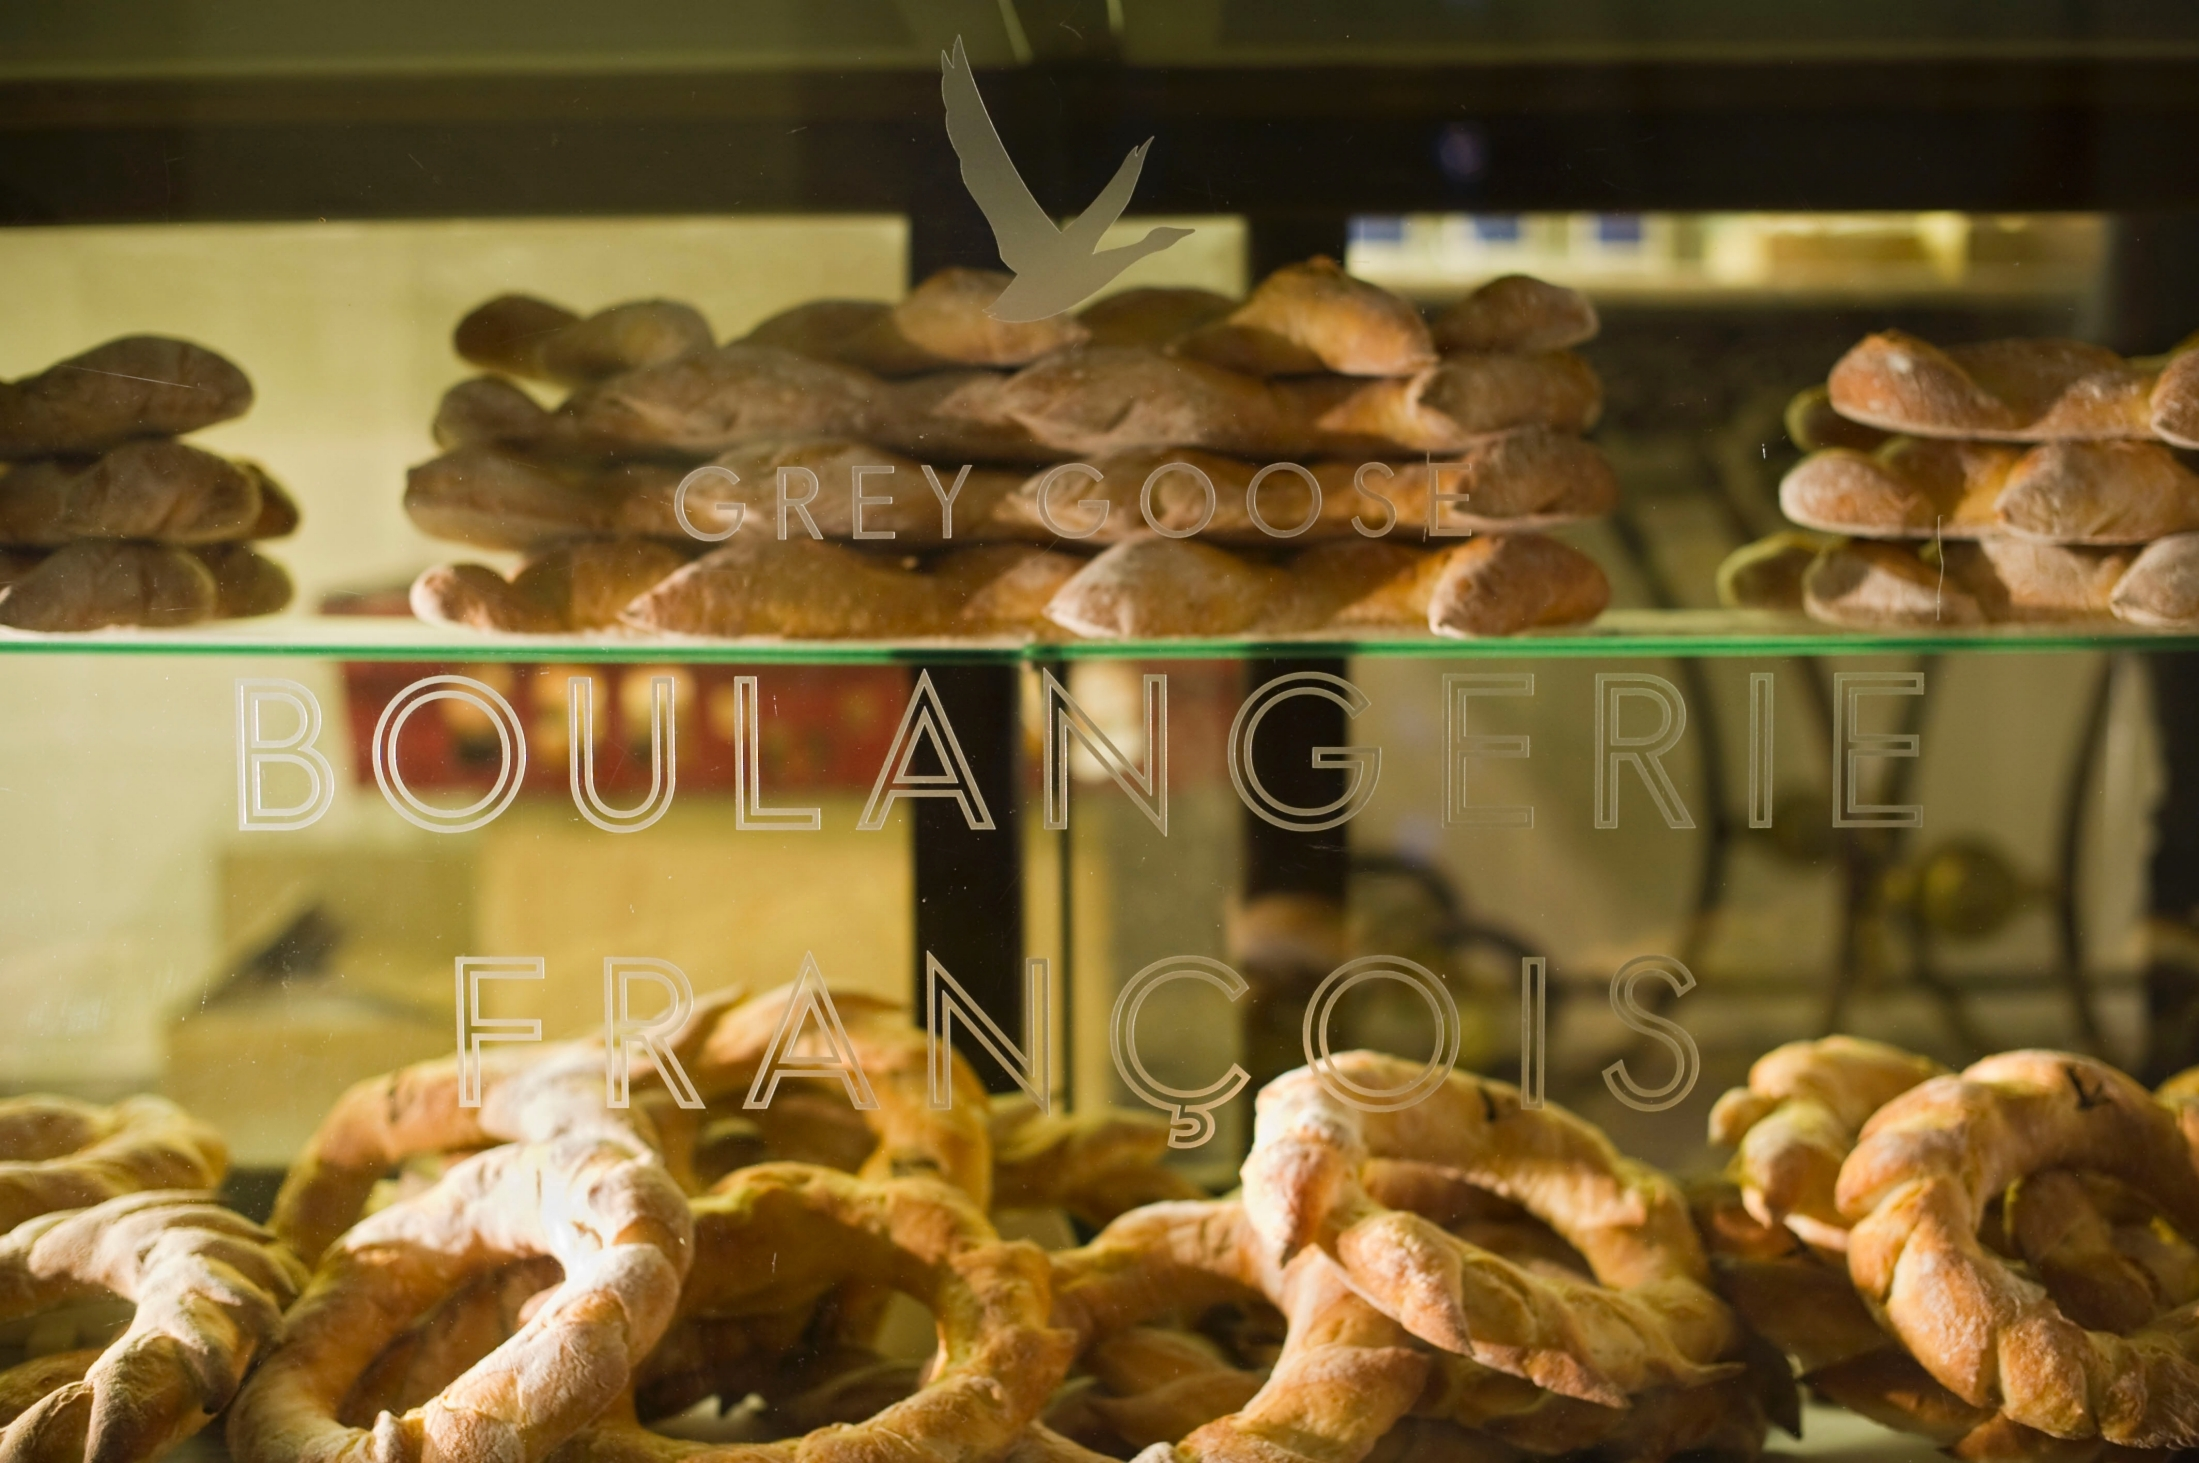 boulangerie Francois bread in window